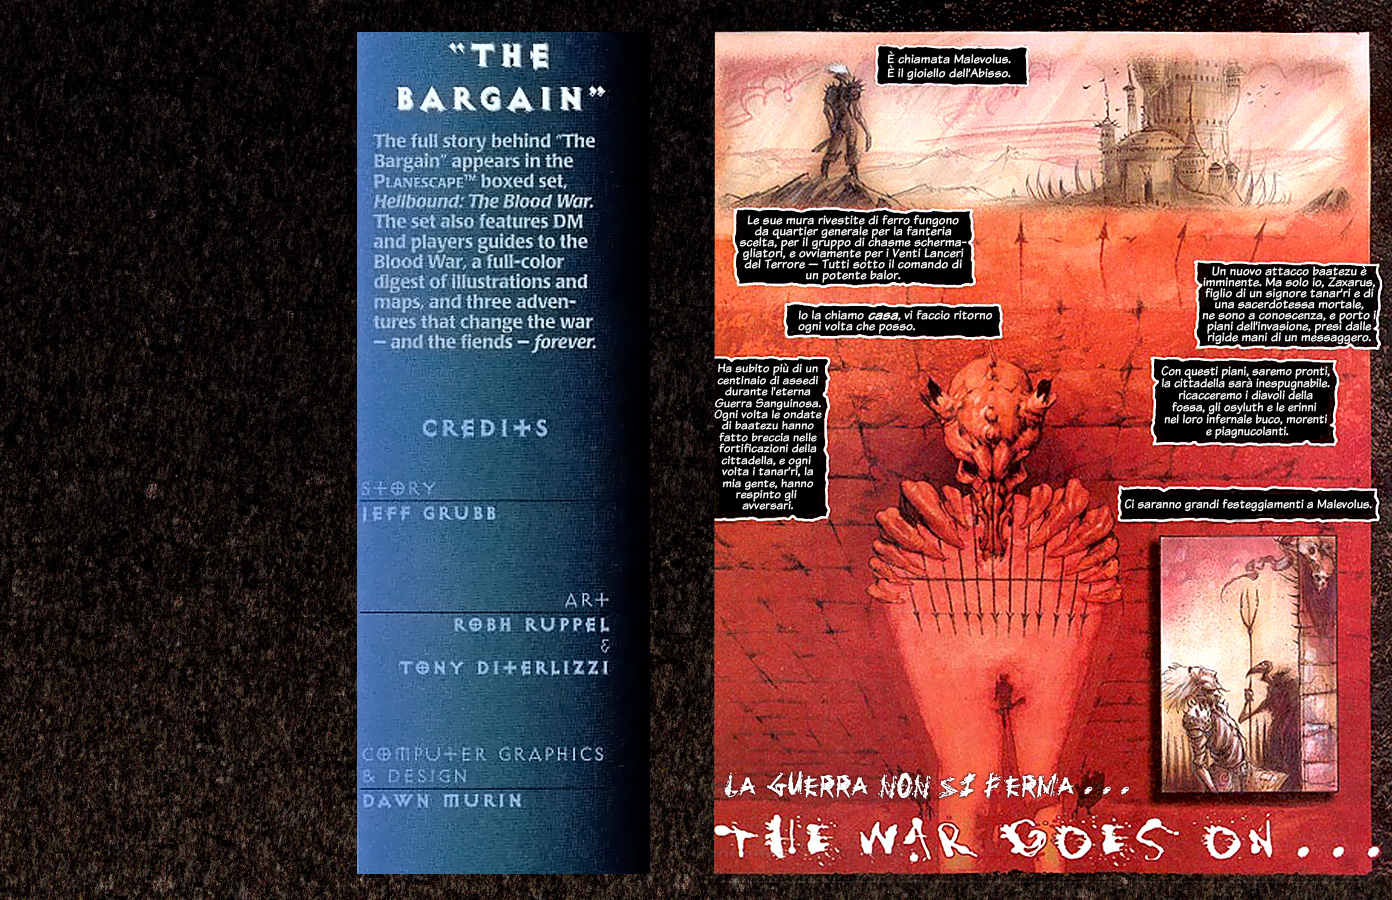 Planescape Hellbound graphic novel the bargain ita italiano by diterlizzi and ruppel, abyss cambion zaxarus vrock